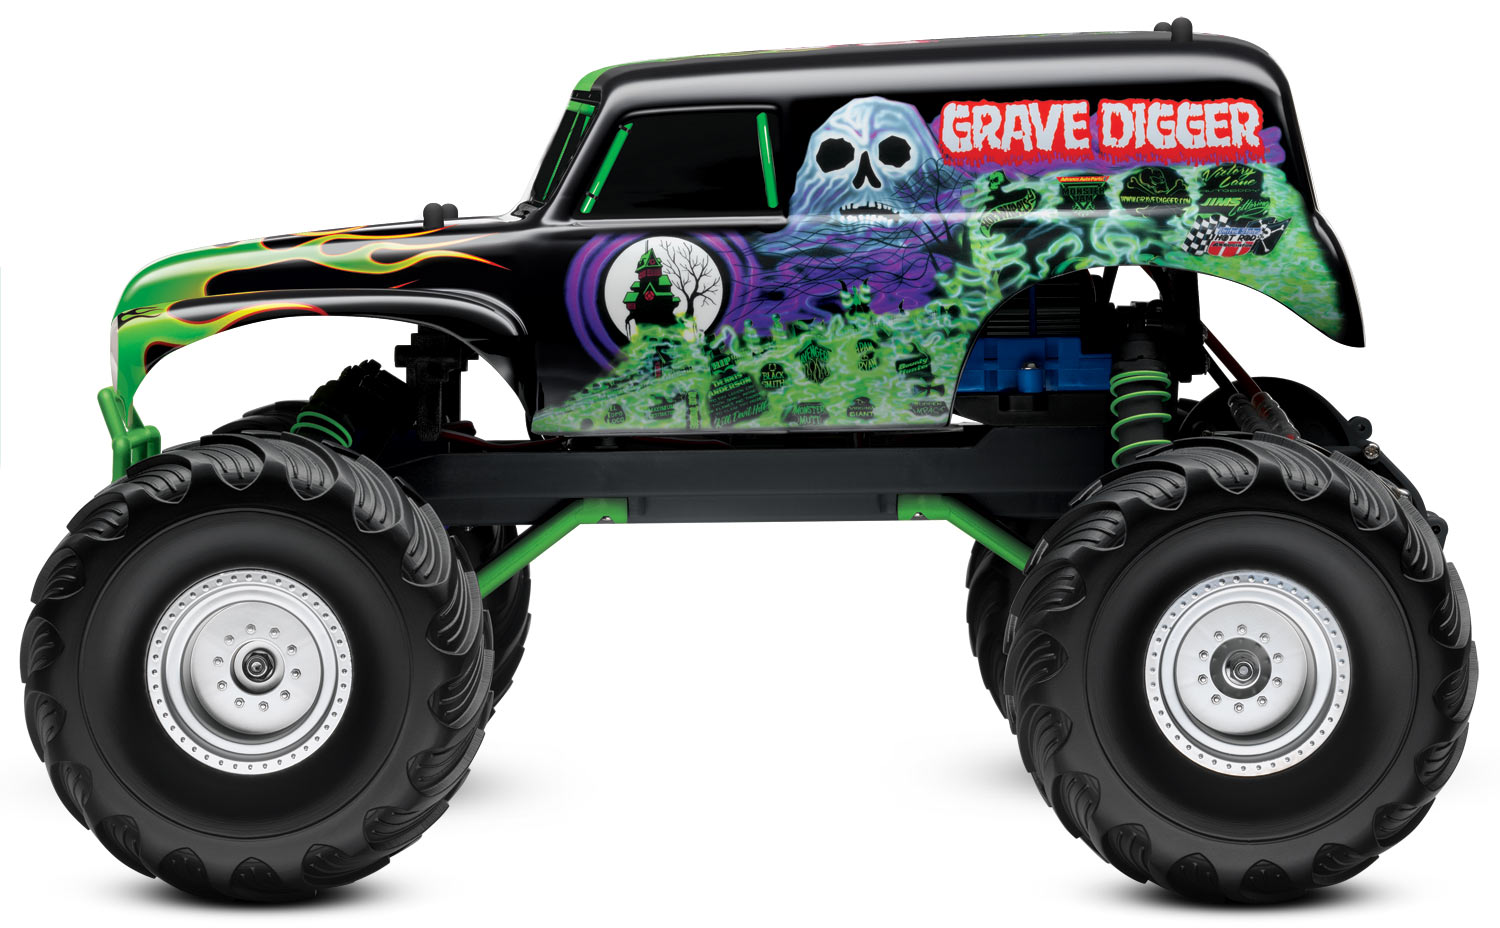 Grave Digger Clipart further Truck Coloring Page as well Auto Kolorowanka besides Motorcycle Transportation At Coloring Pages Book For Kids Boys besides Lisa Frank Coloring Pages Picture. on printable monster truck coloring pages